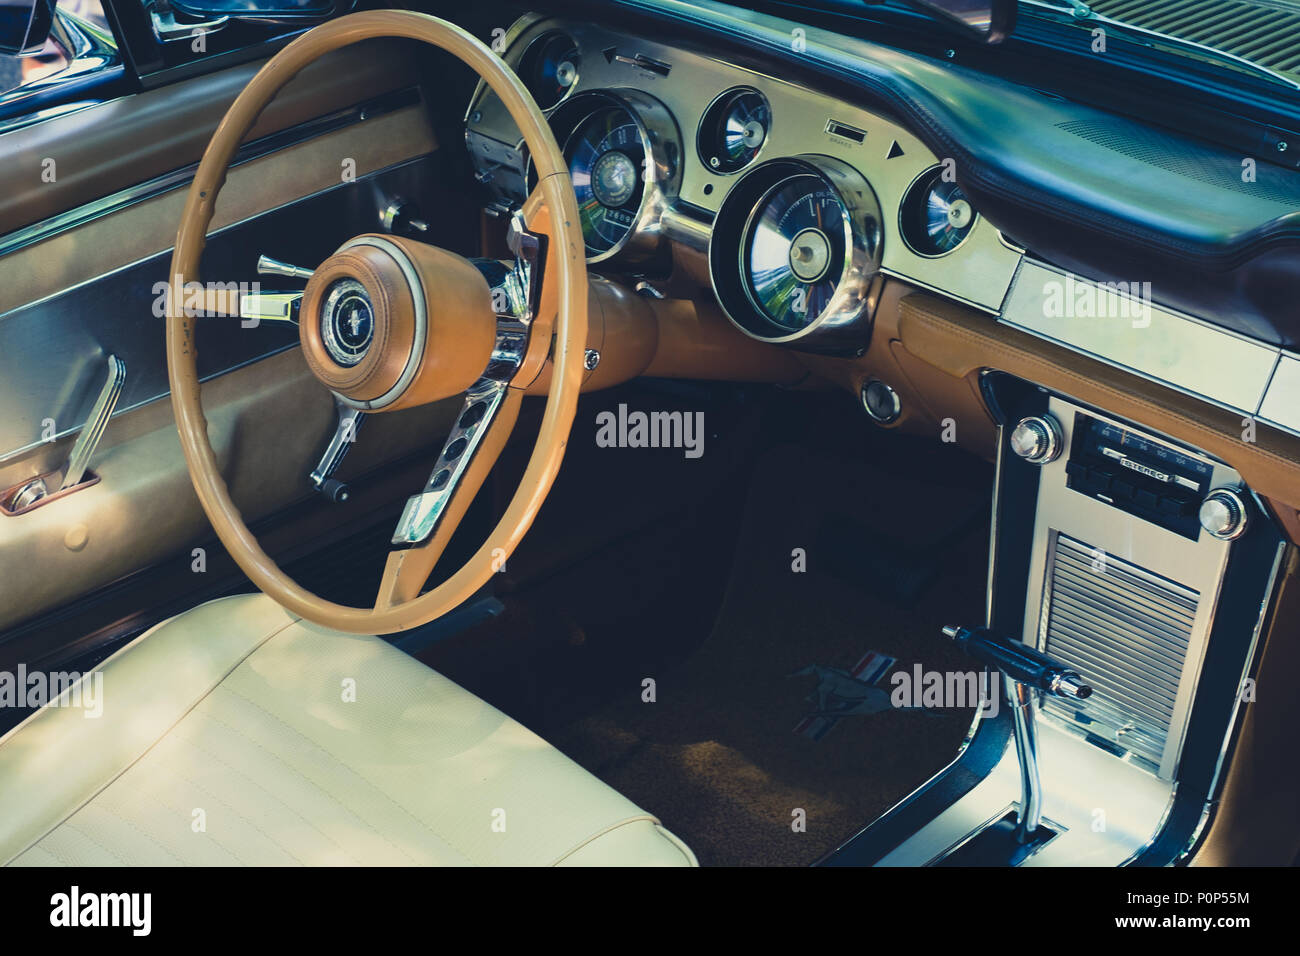 Berlin germany june 09 2018 steering wheel dashboard and interior of ford mustang vintage car cockpit at oldtimer event for vintage cars and